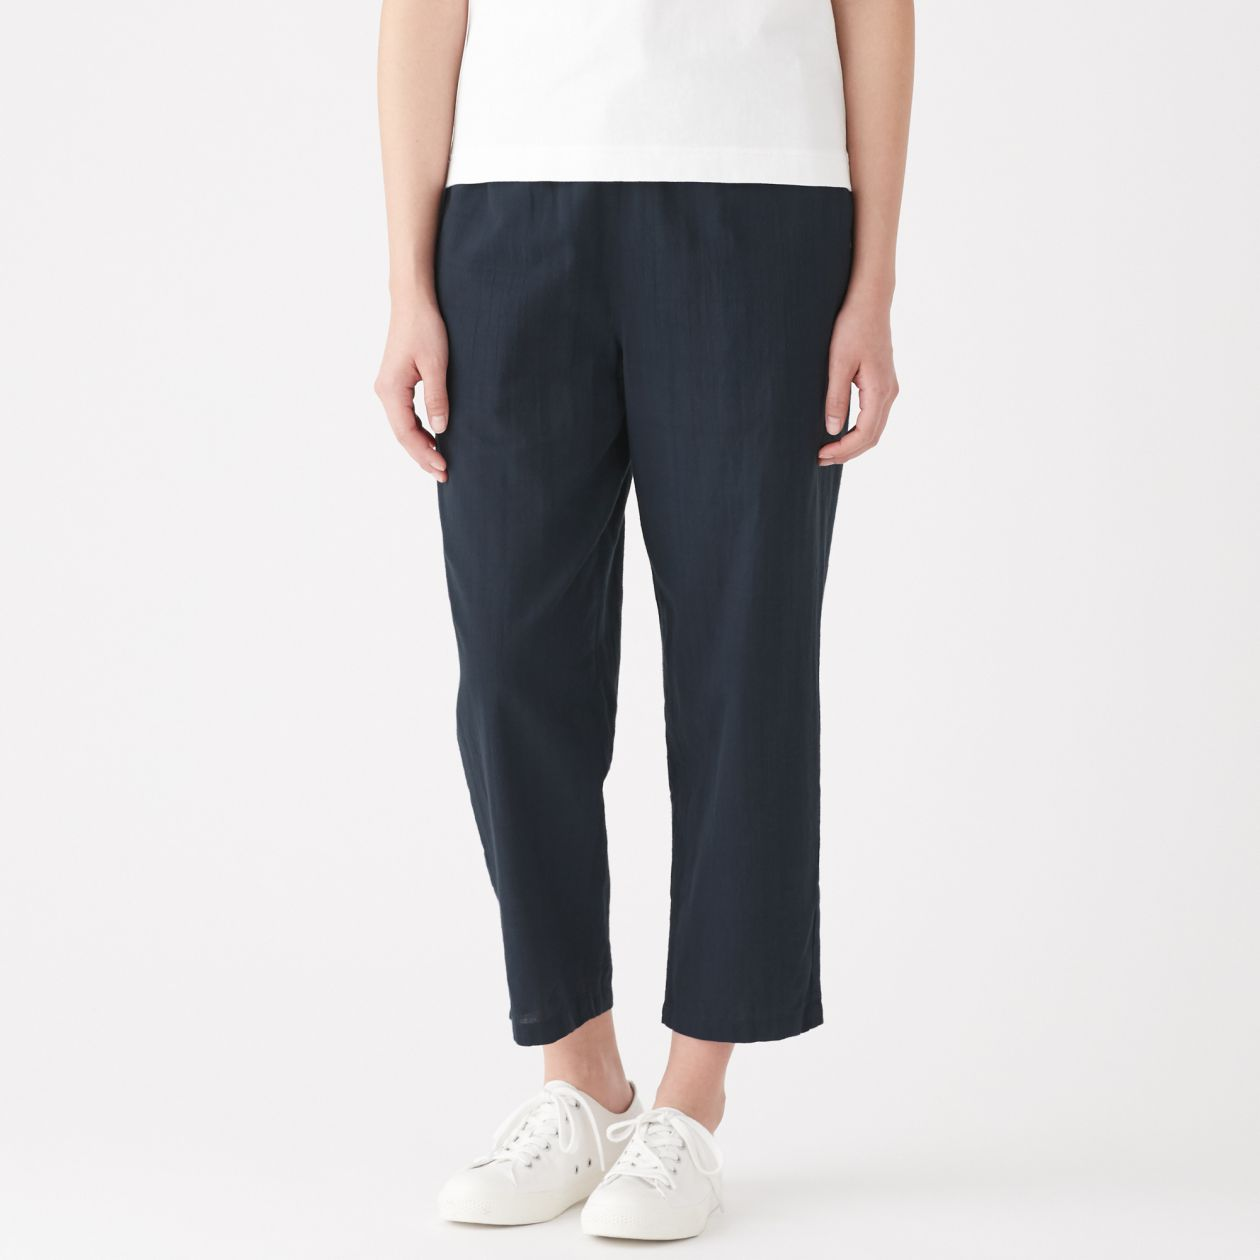 INDIAN HAND SPUN/WOVEN EASY TROUSERS